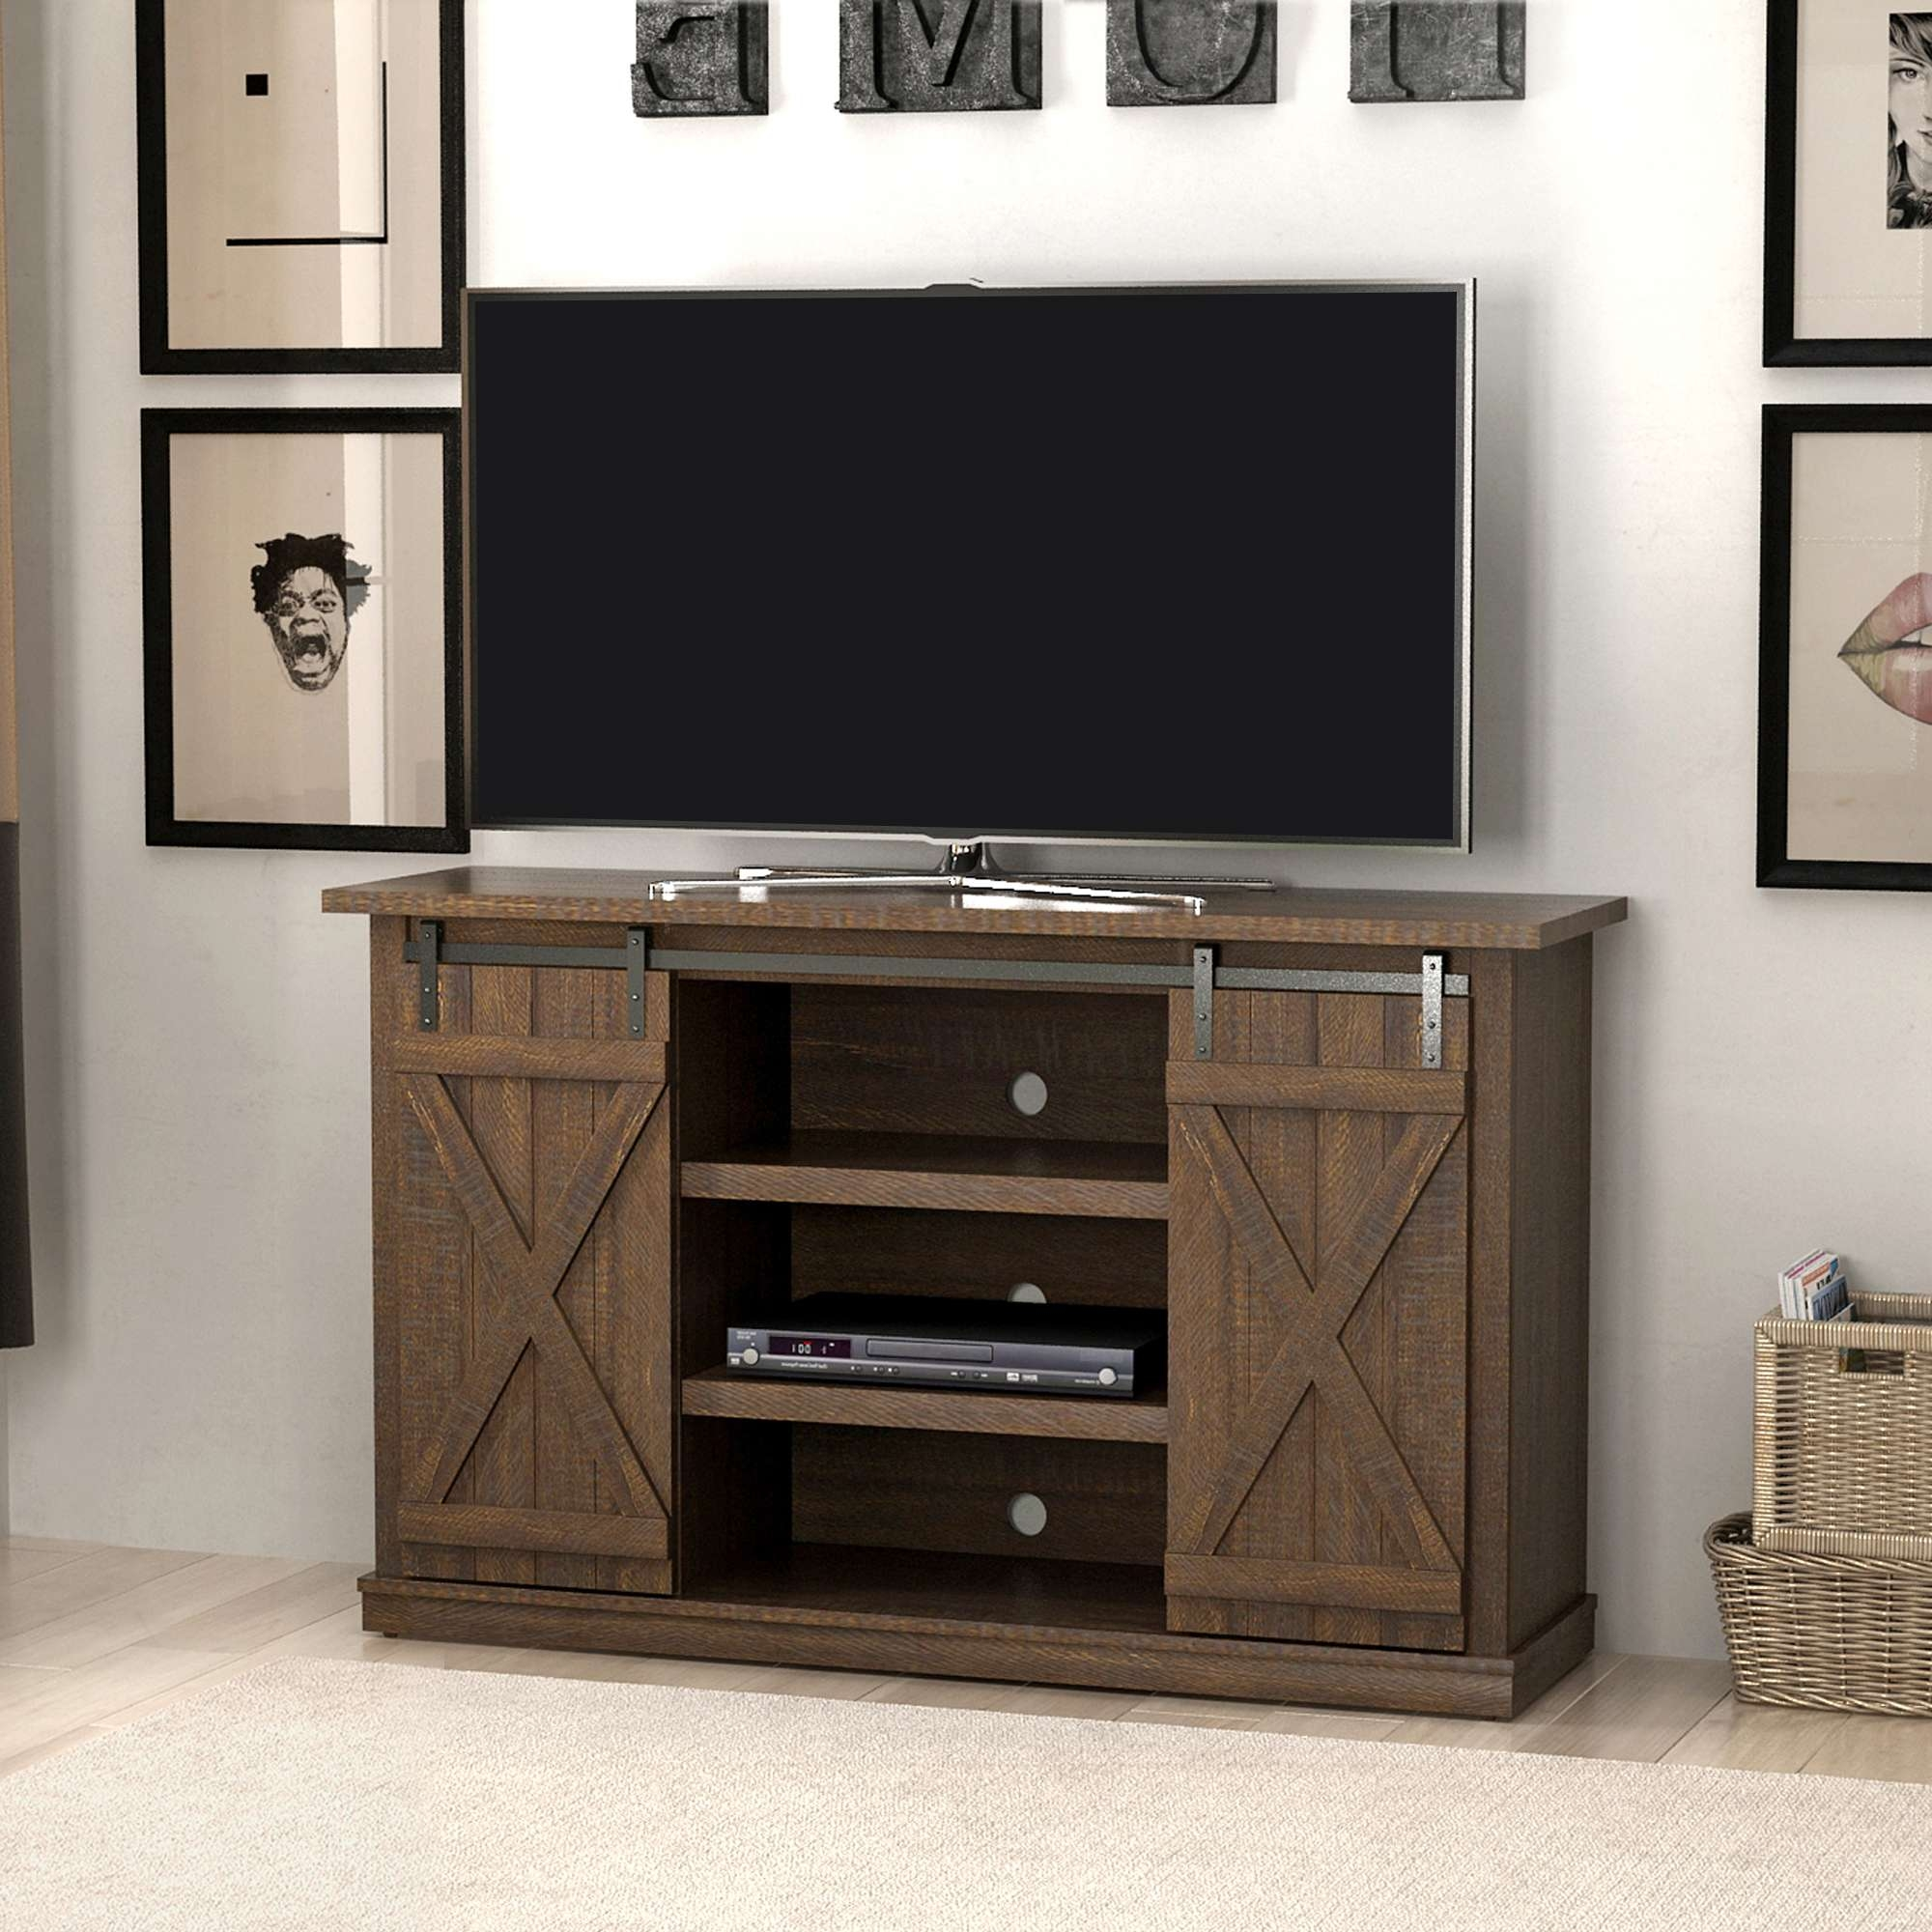 Tv Stands – Walmart Pertaining To Stand And Deliver Tv Stands (View 19 of 20)